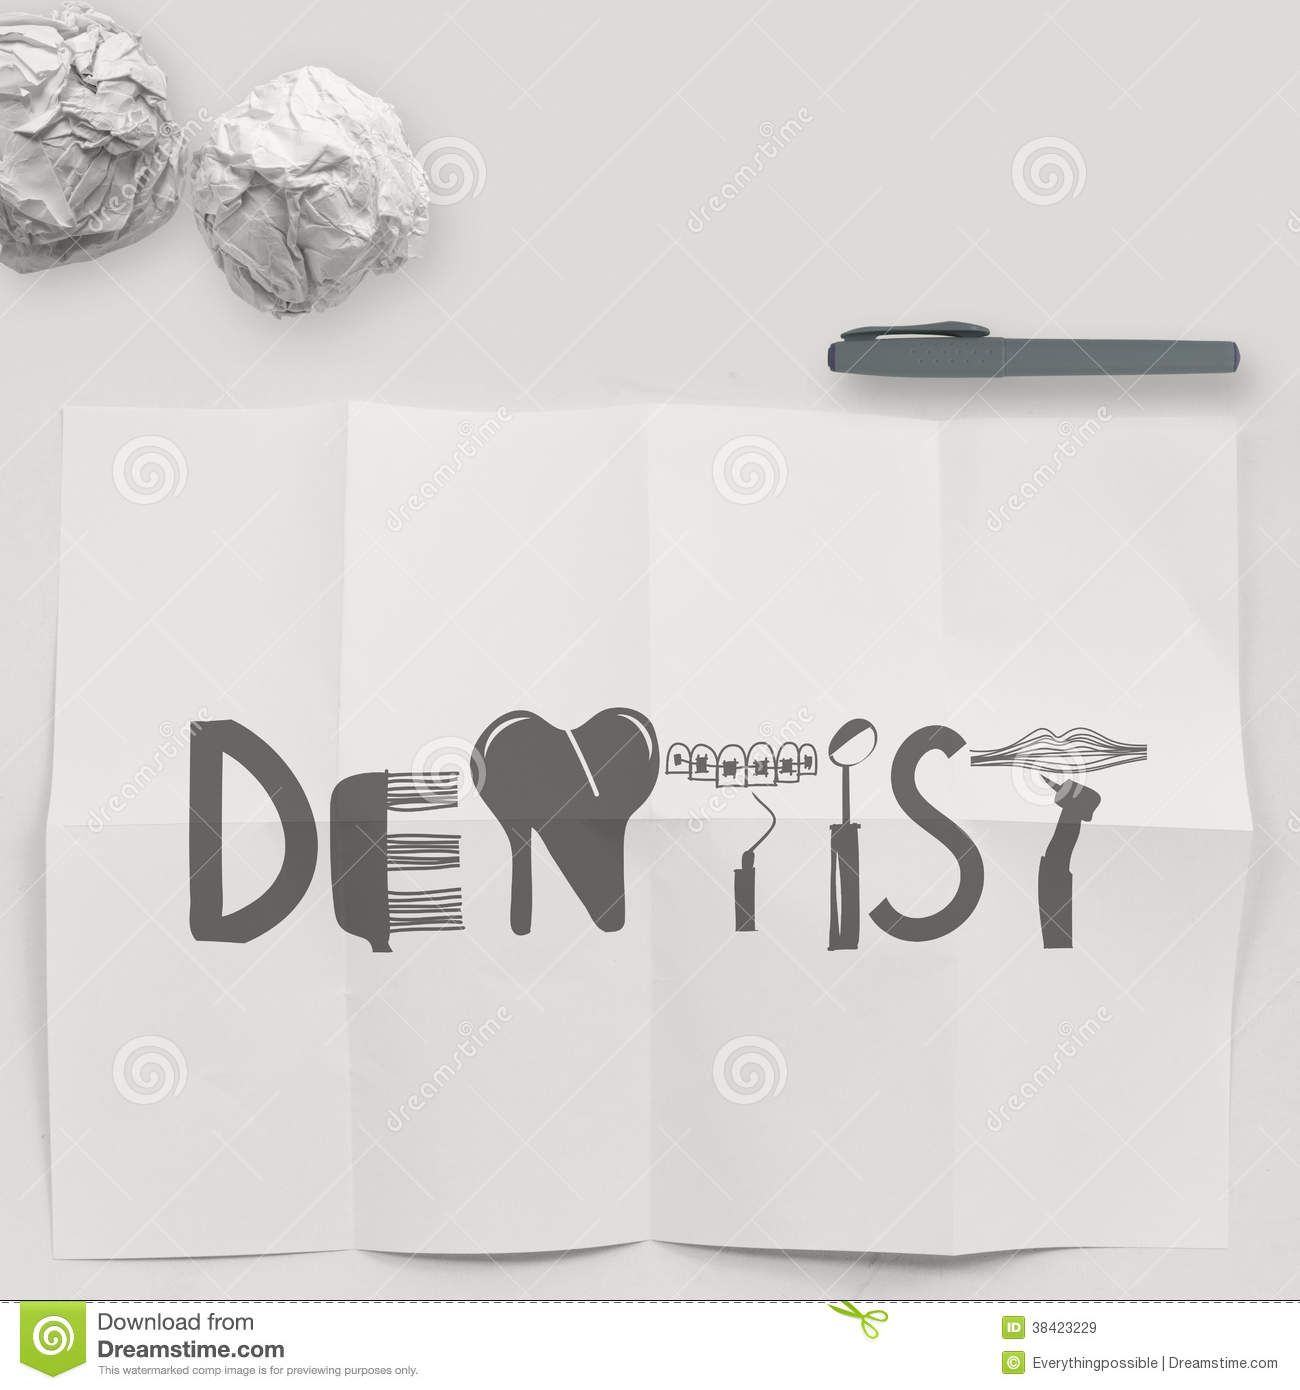 Design Word DENTIST On White Crumpled Paper And Texture Royalty ...